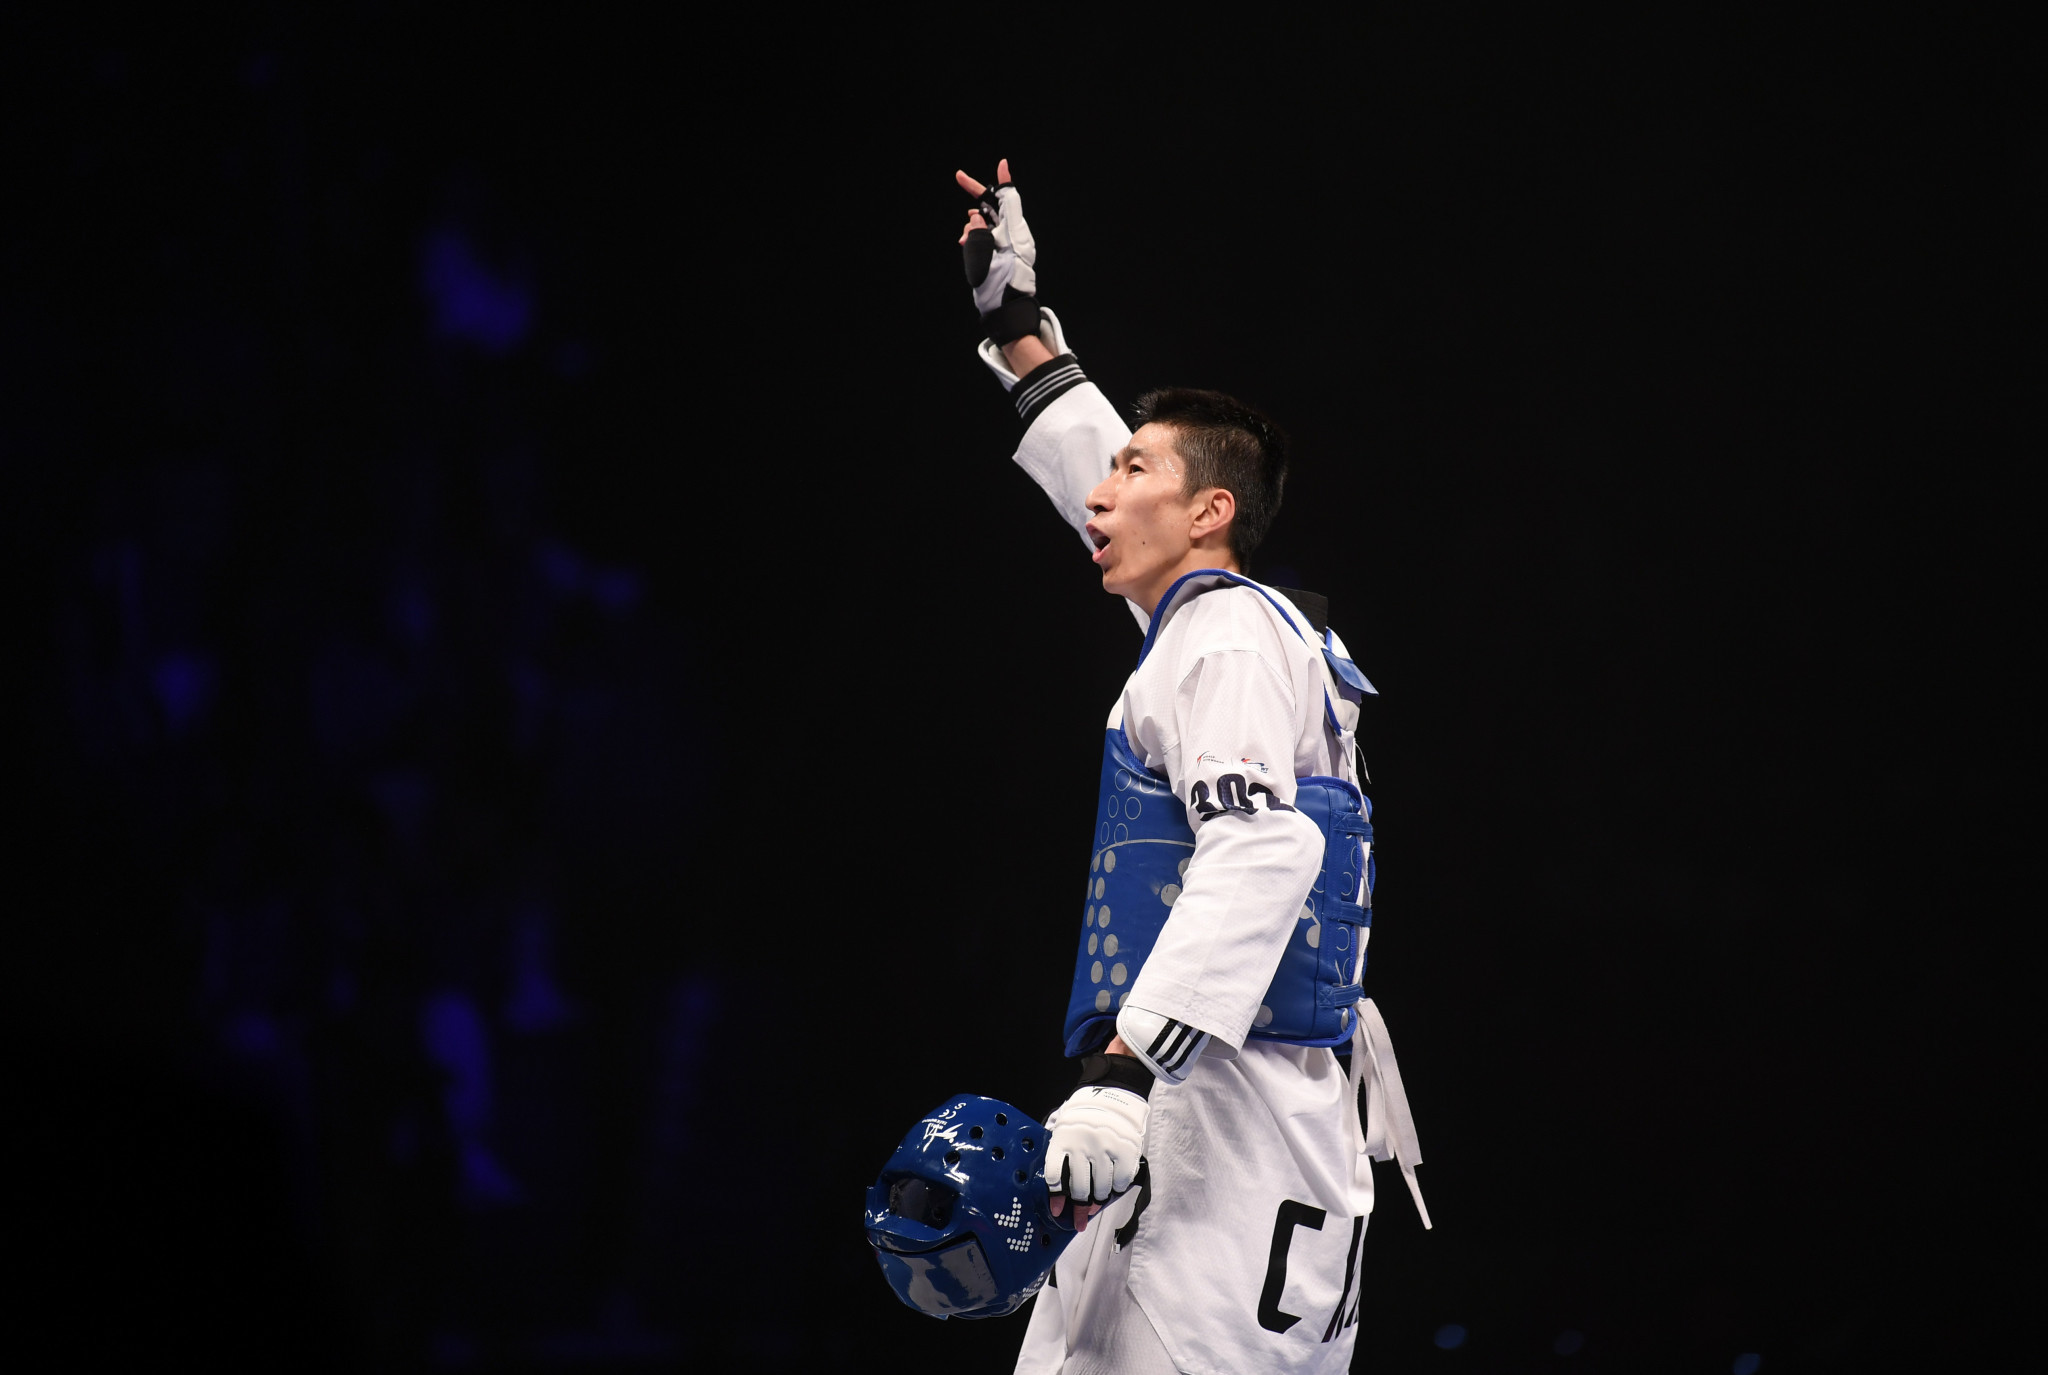 Zhao successfully defends title at World Taekwondo Championships on fruitful final day for China